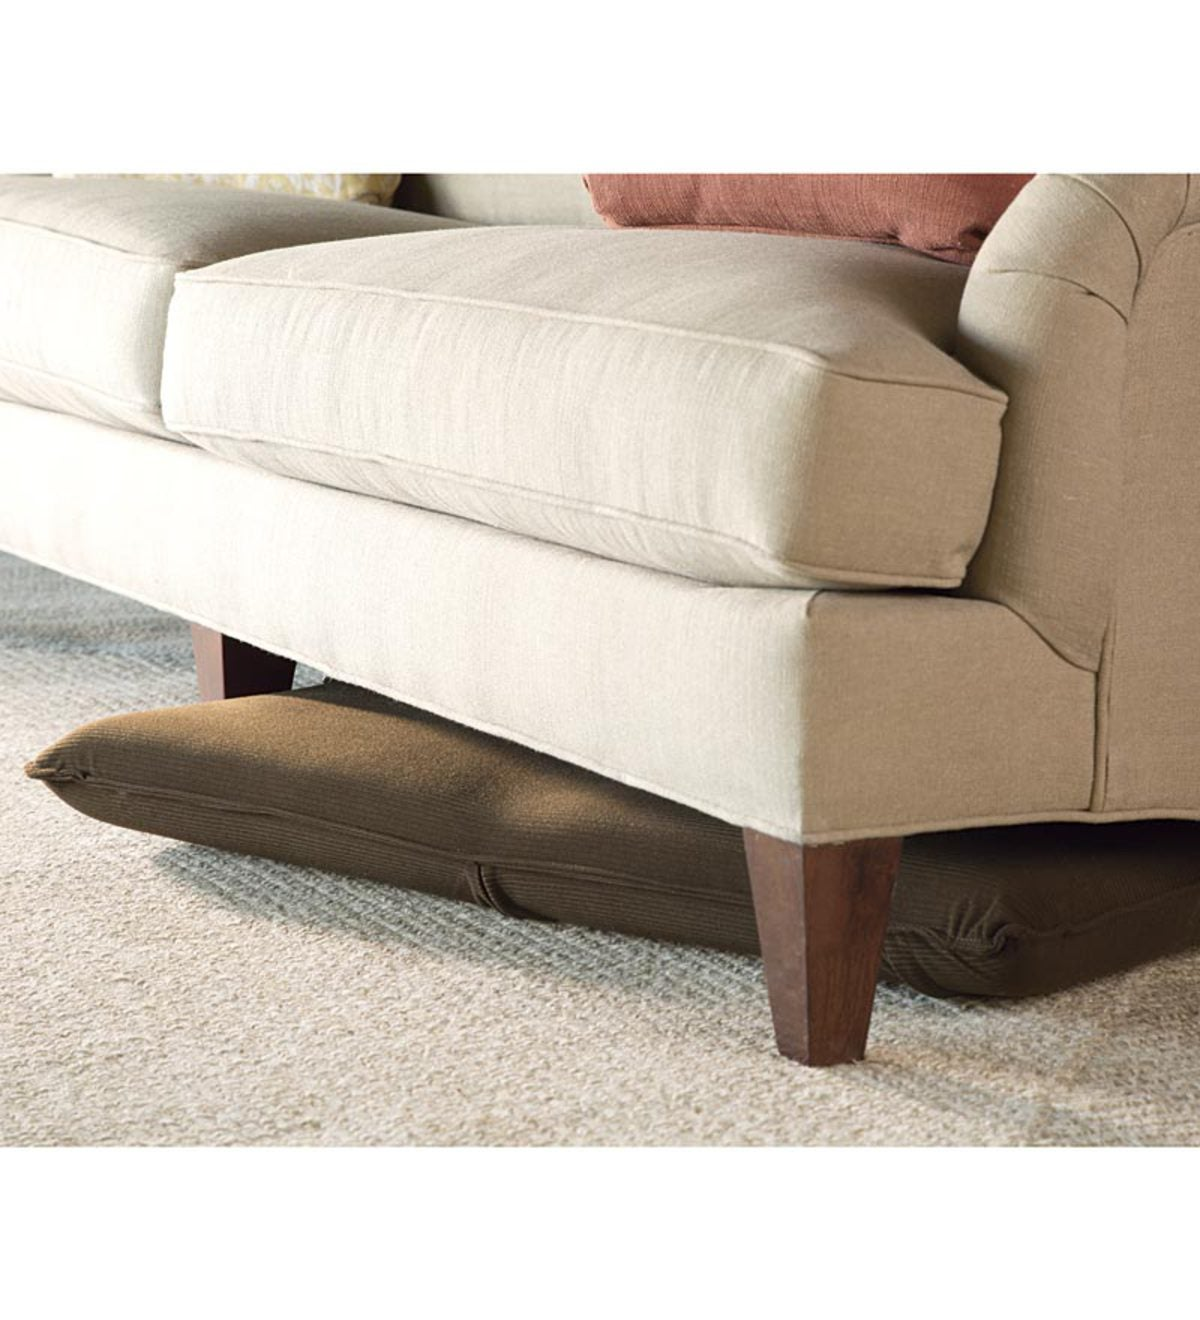 Multiangle Floor Chair With Adjustable Back Chocolate